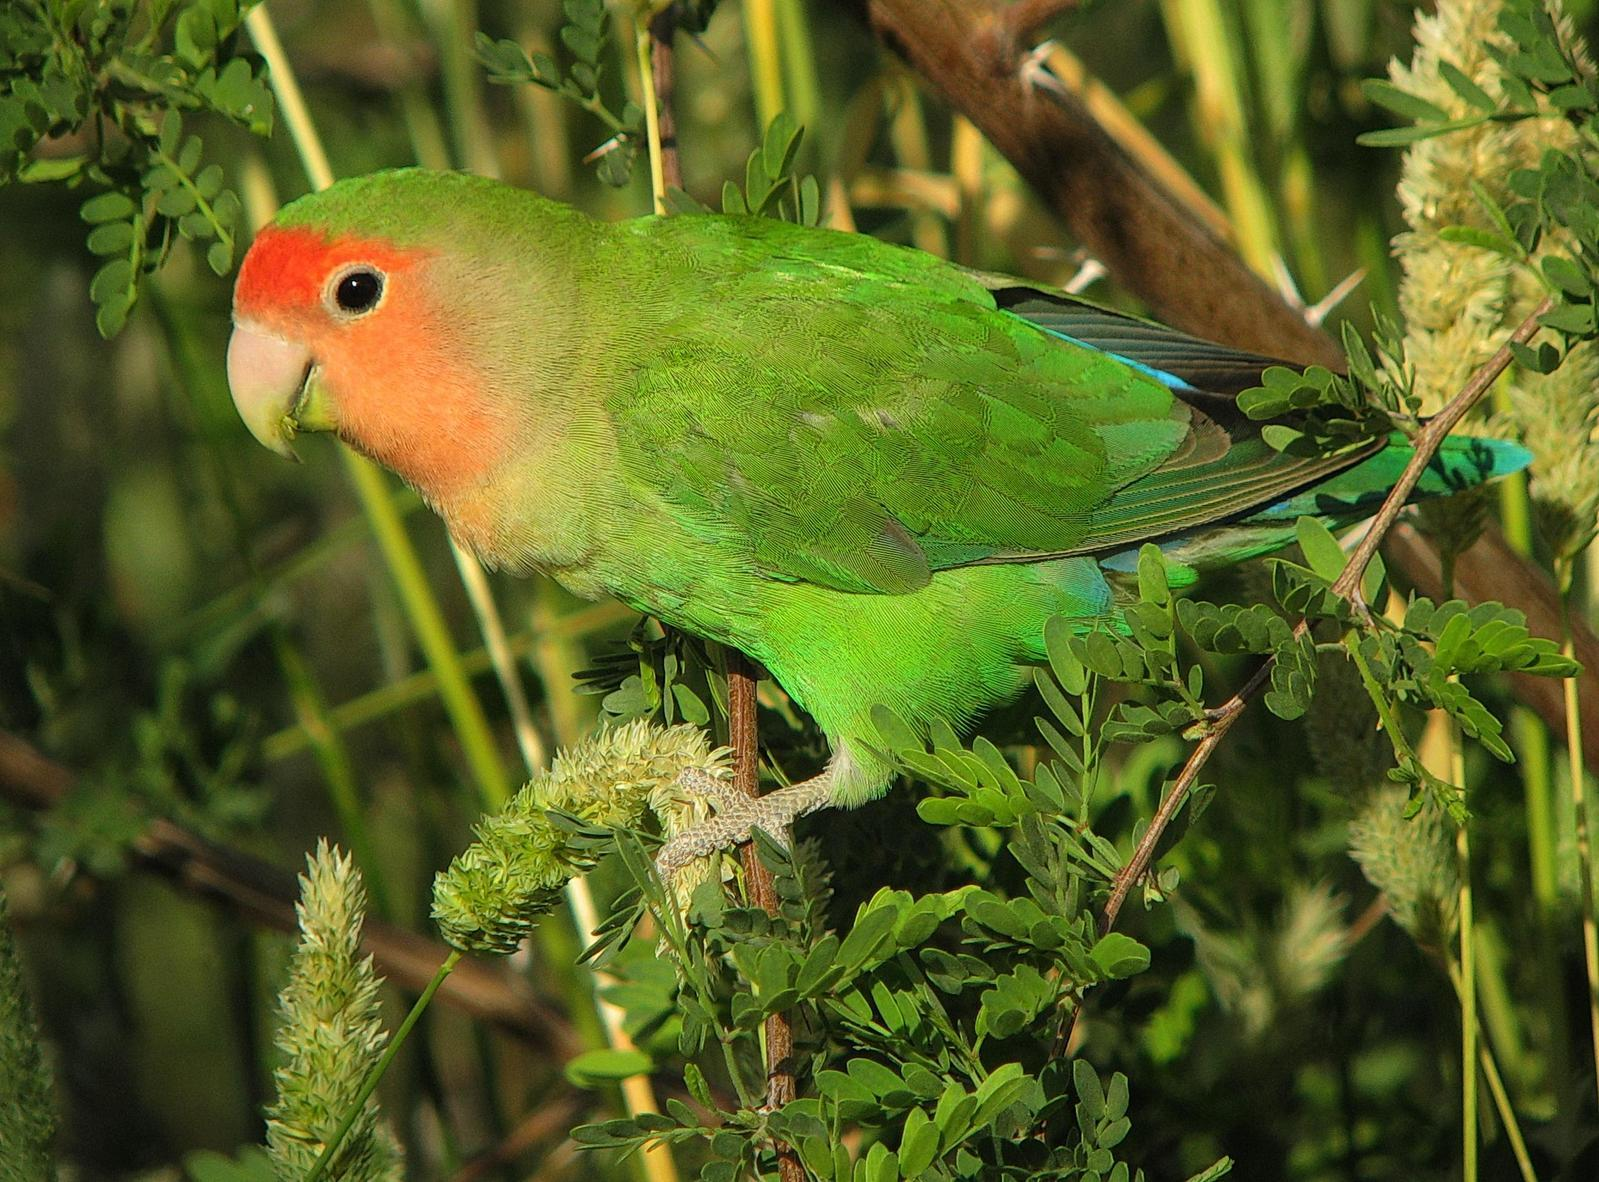 Rosy-faced Lovebird Photo by Michael Moore